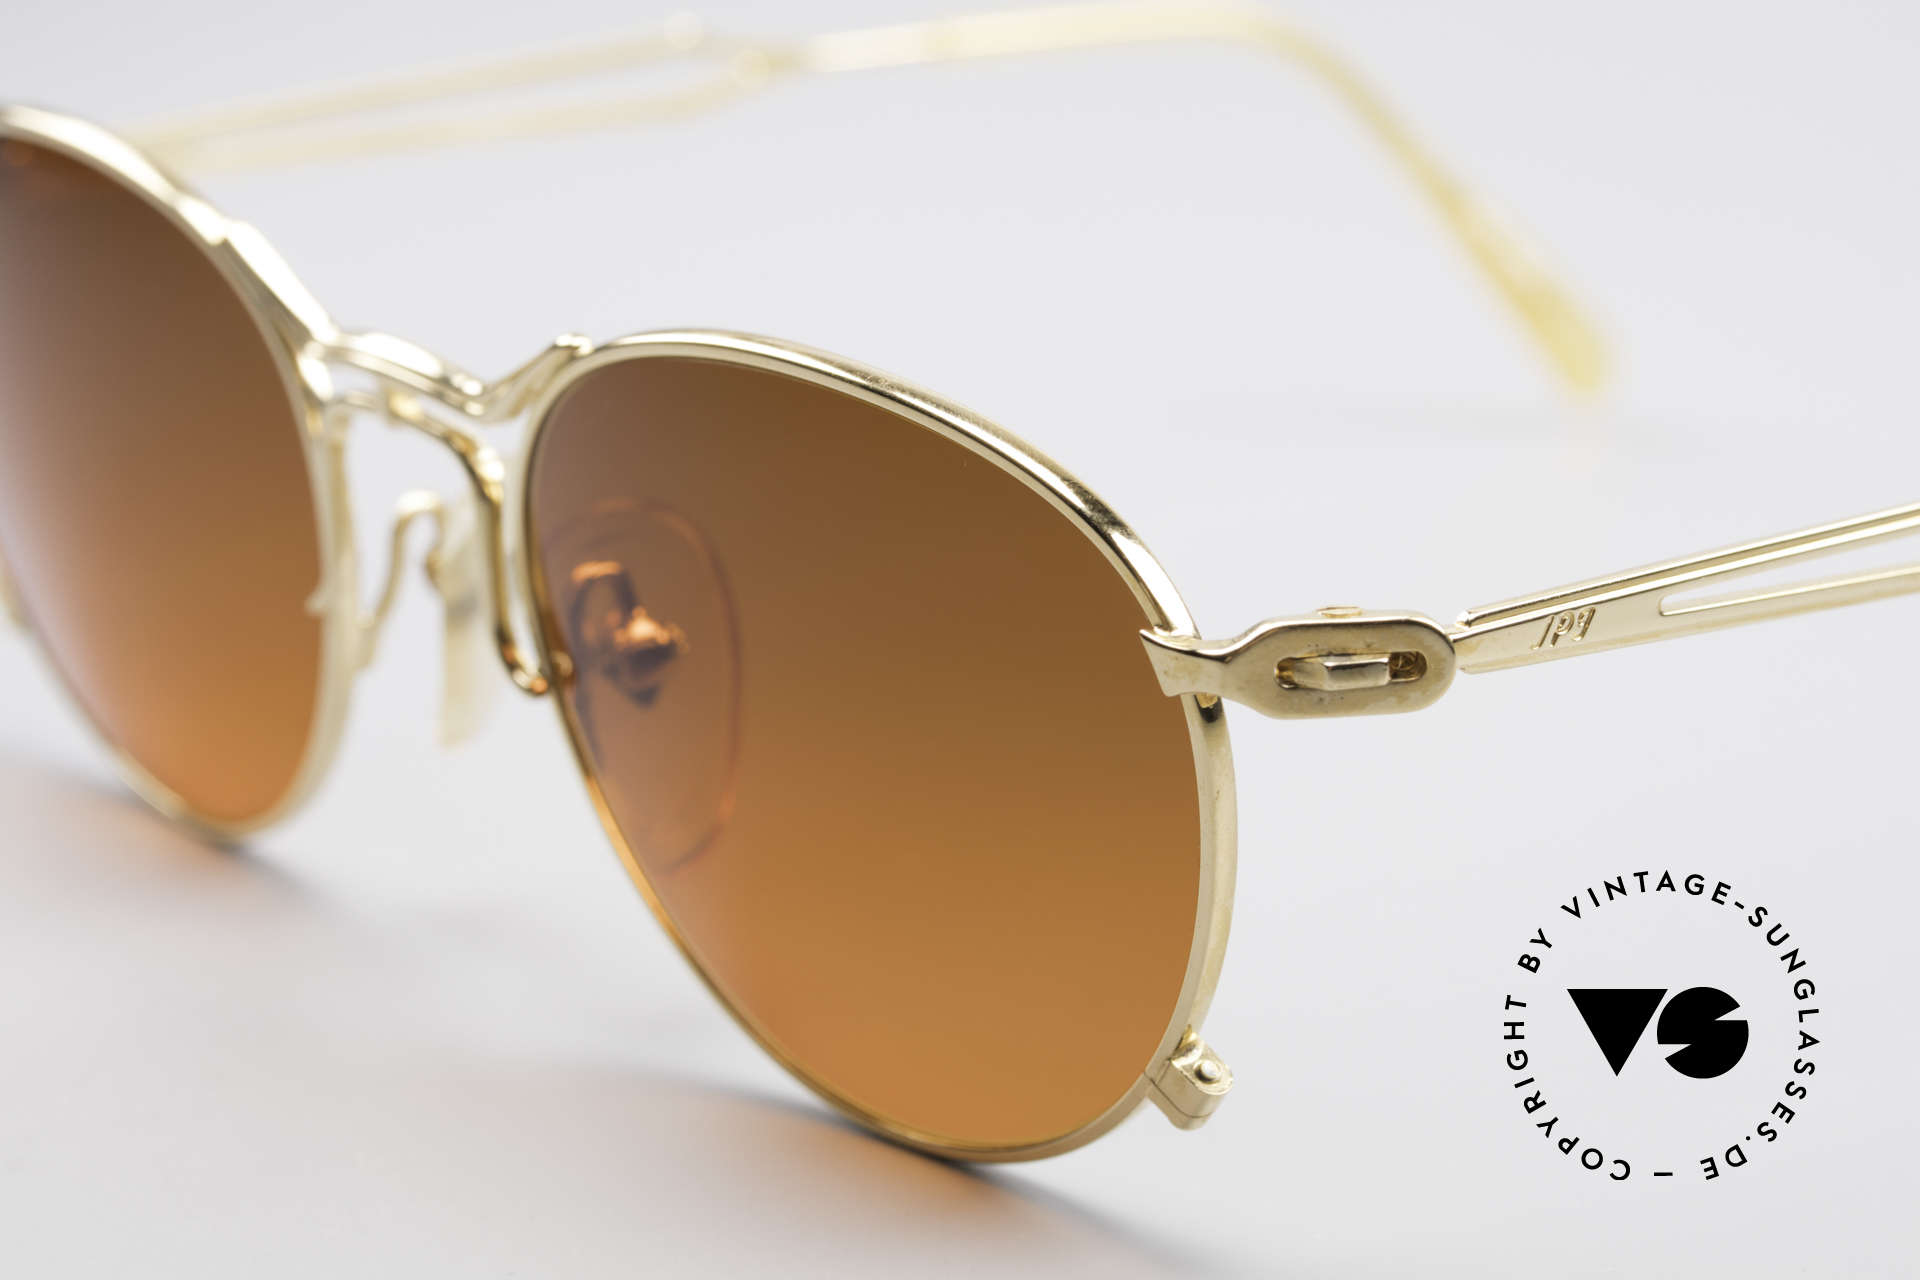 Jean Paul Gaultier 55-2177 Gold Plated Designer Frame, top-notch craftsmanship (made in Japan) from 1996/97, Made for Men and Women